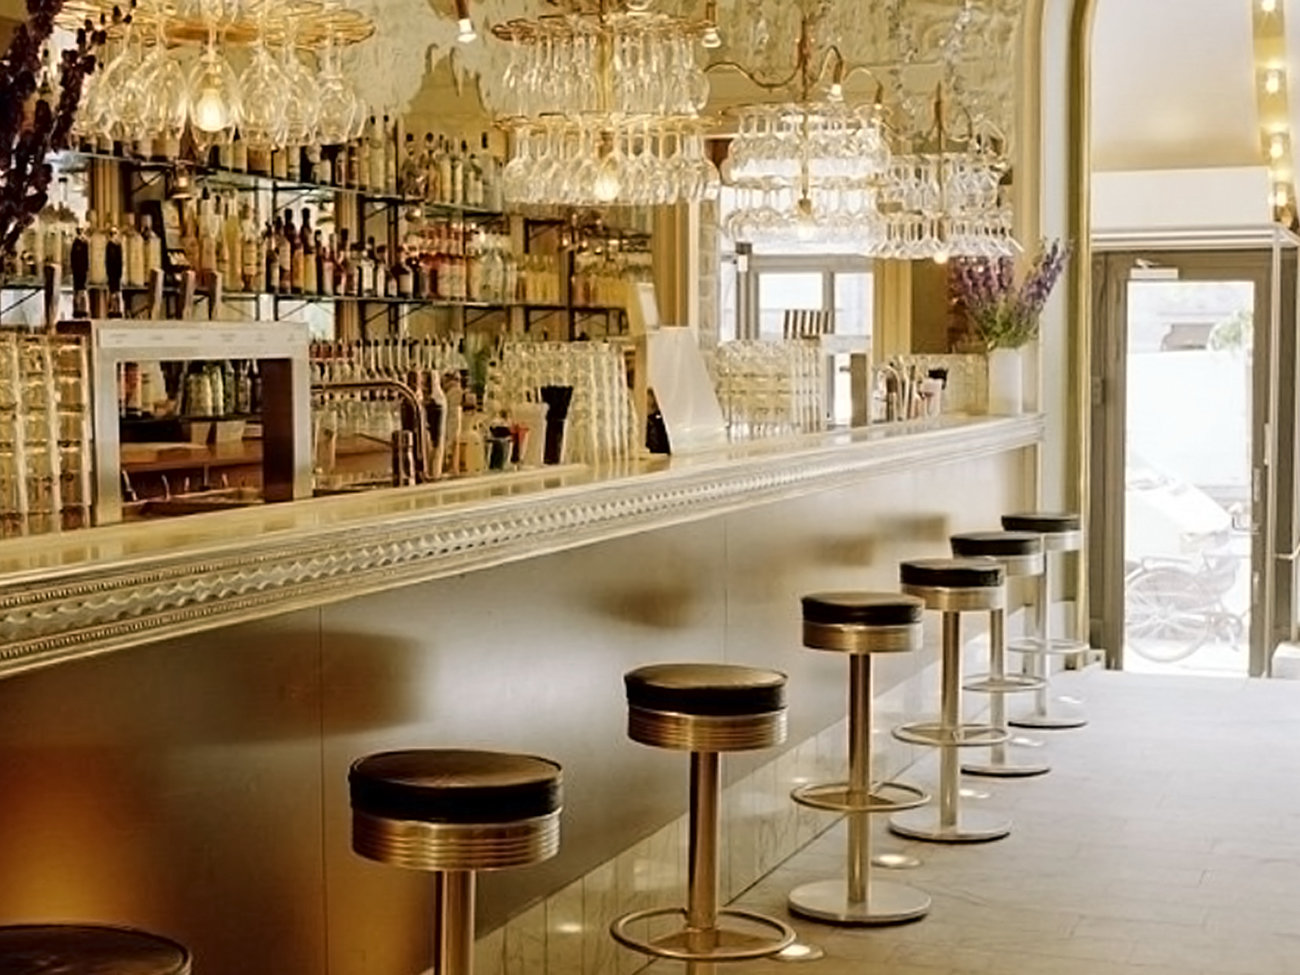 Riche Bar in Stockholm